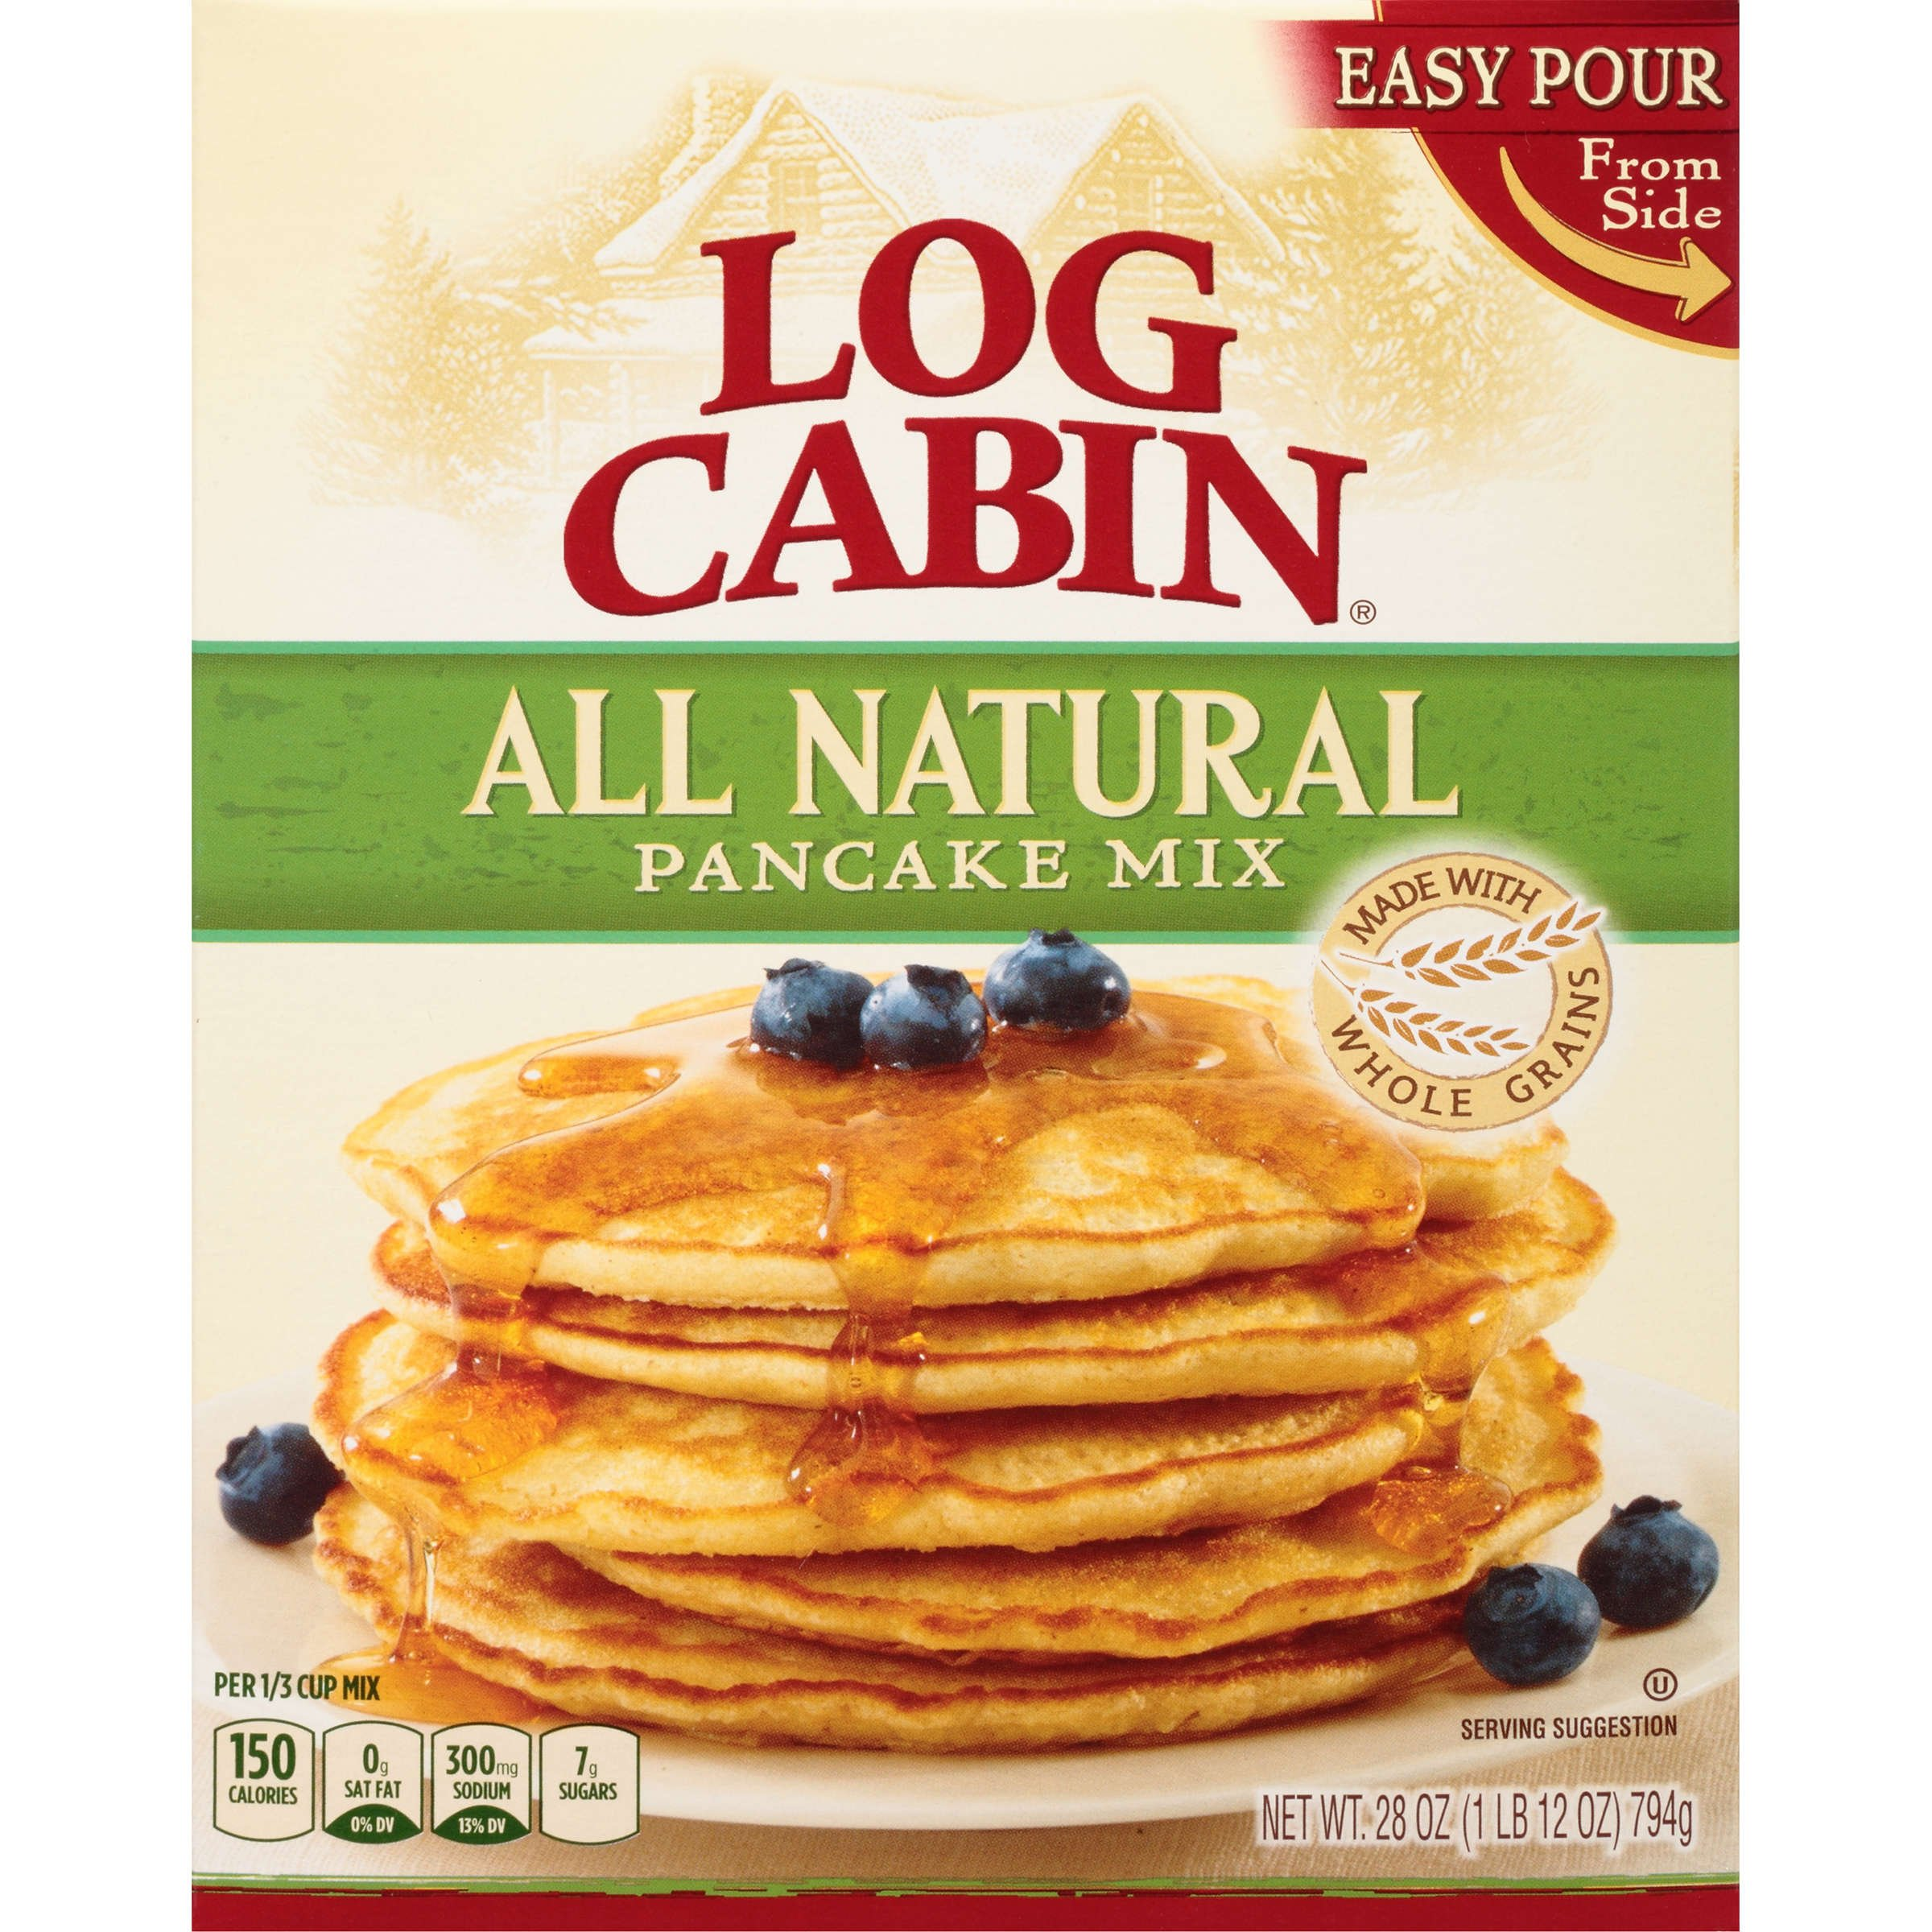 Log Cabin All Natural Pancake Mix, 28 Ounce (Pack of 12)